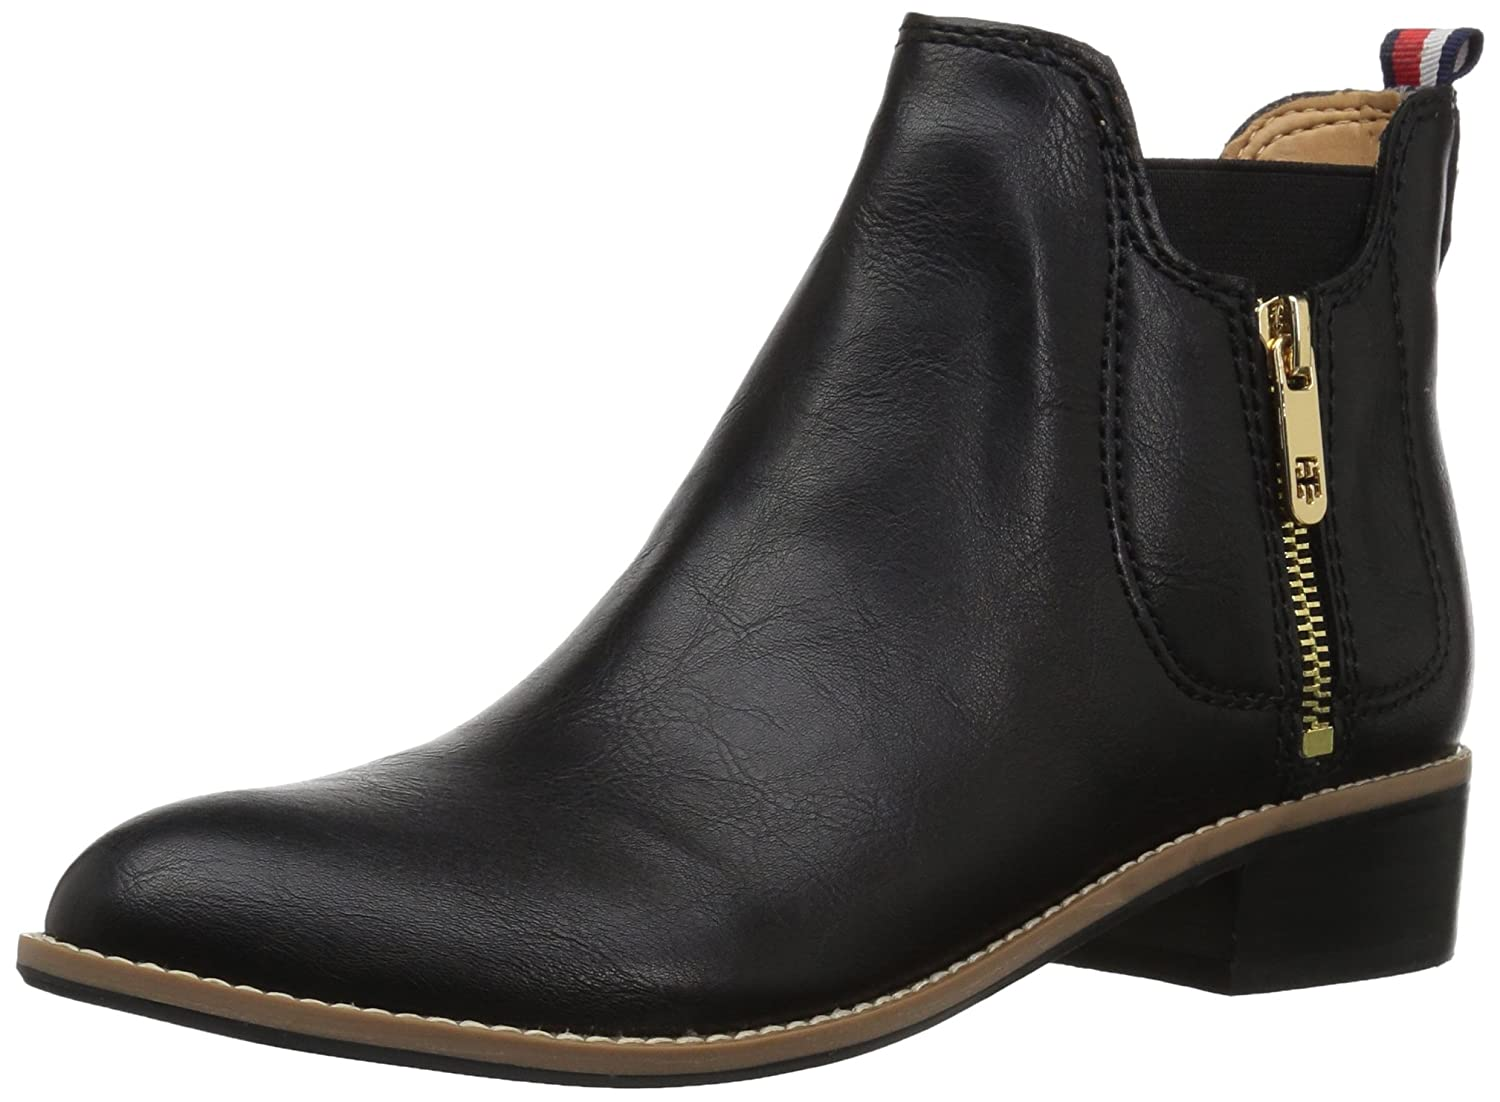 Tommy Hilfiger Women's Toscana Ankle Boot B06XVGWRJB 12 B(M) US|Black